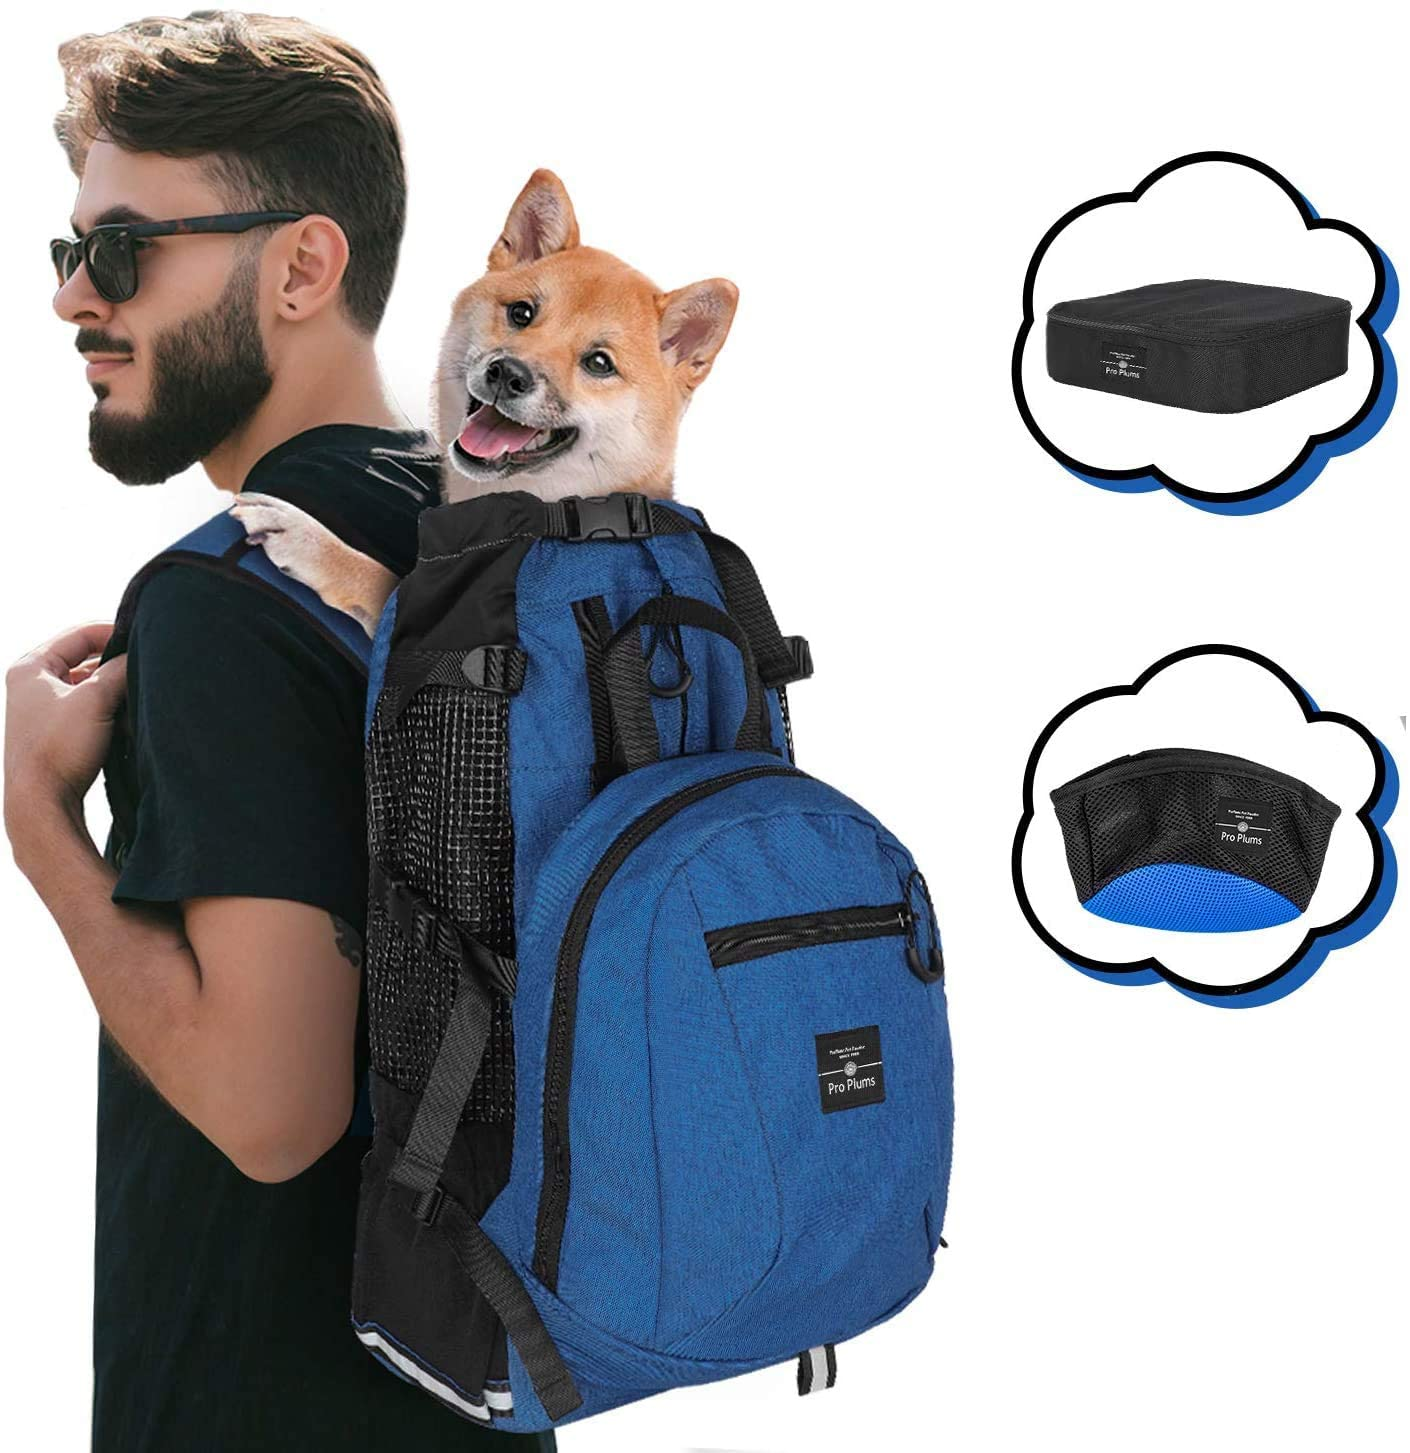 PROPLUMS Dog Carrier Backpack for Small and Medium Dogs Multifunction Pet Sport Sack Air for Walking Hiking and Traveling with Detachable Storage Bag Free Booster Block and Collapsible Dog Bowls